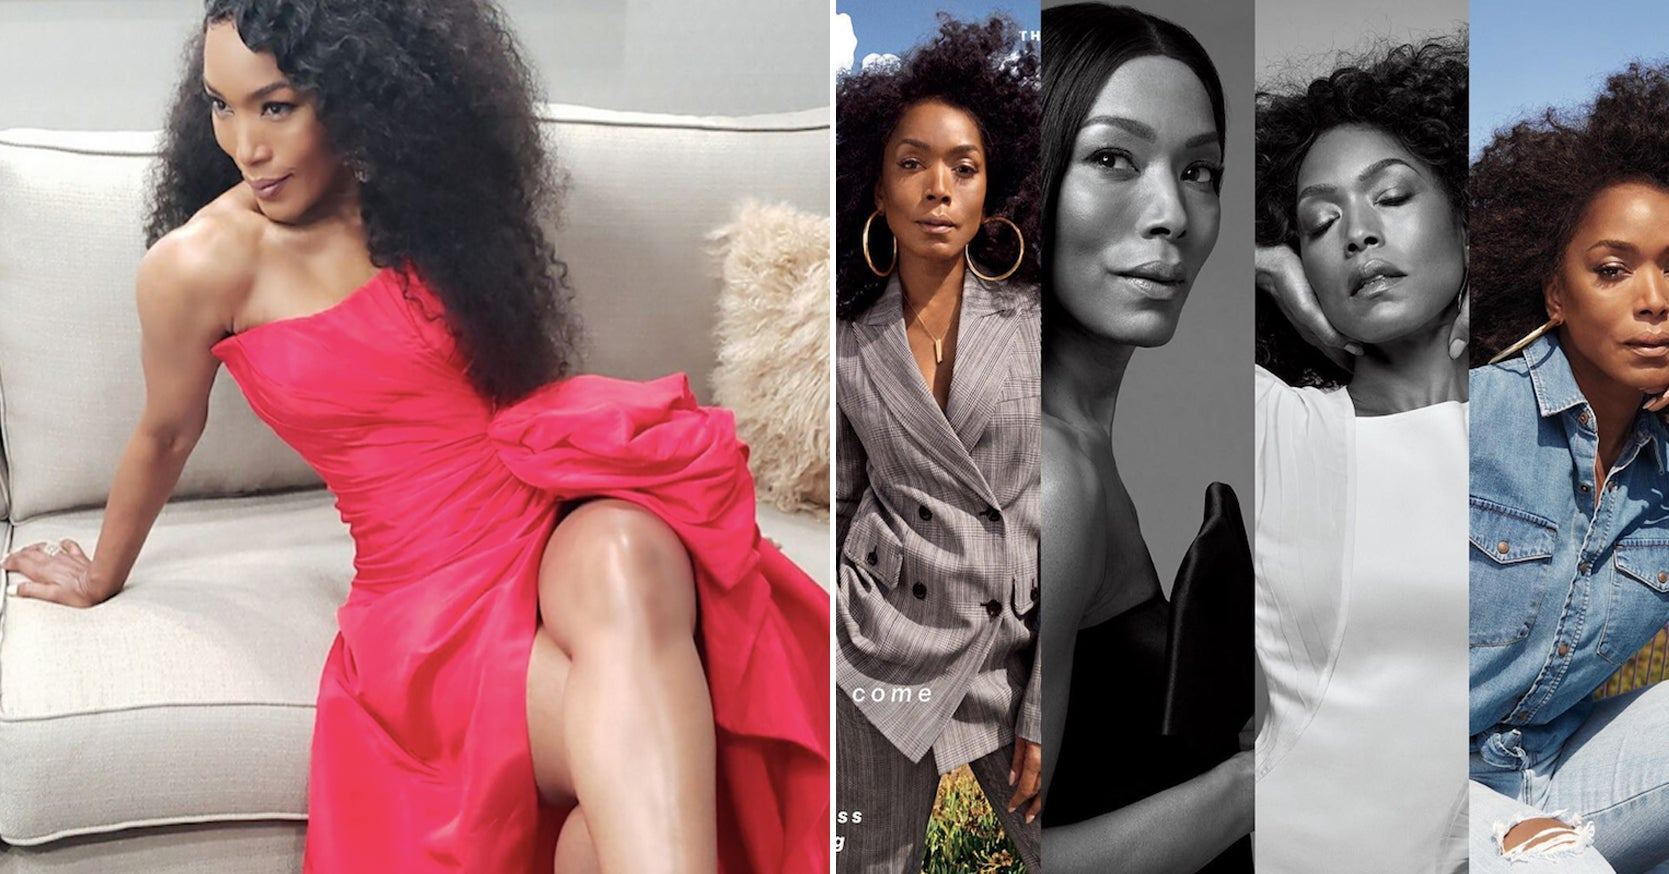 18 Reasons Angela Bassett Is The Most Underrated Actress Of All Time